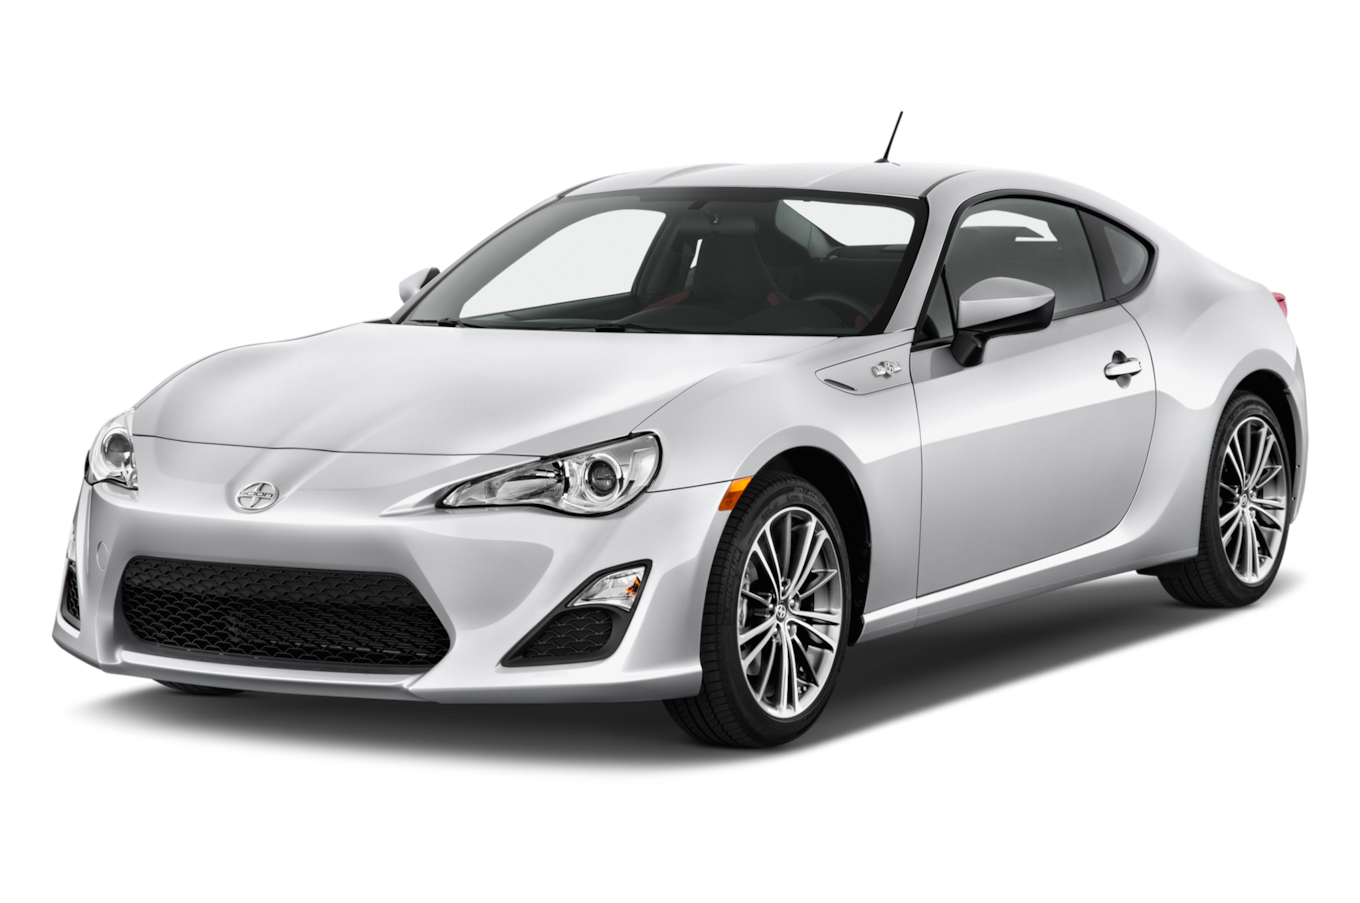 19 All New 2020 Scion Frs Price